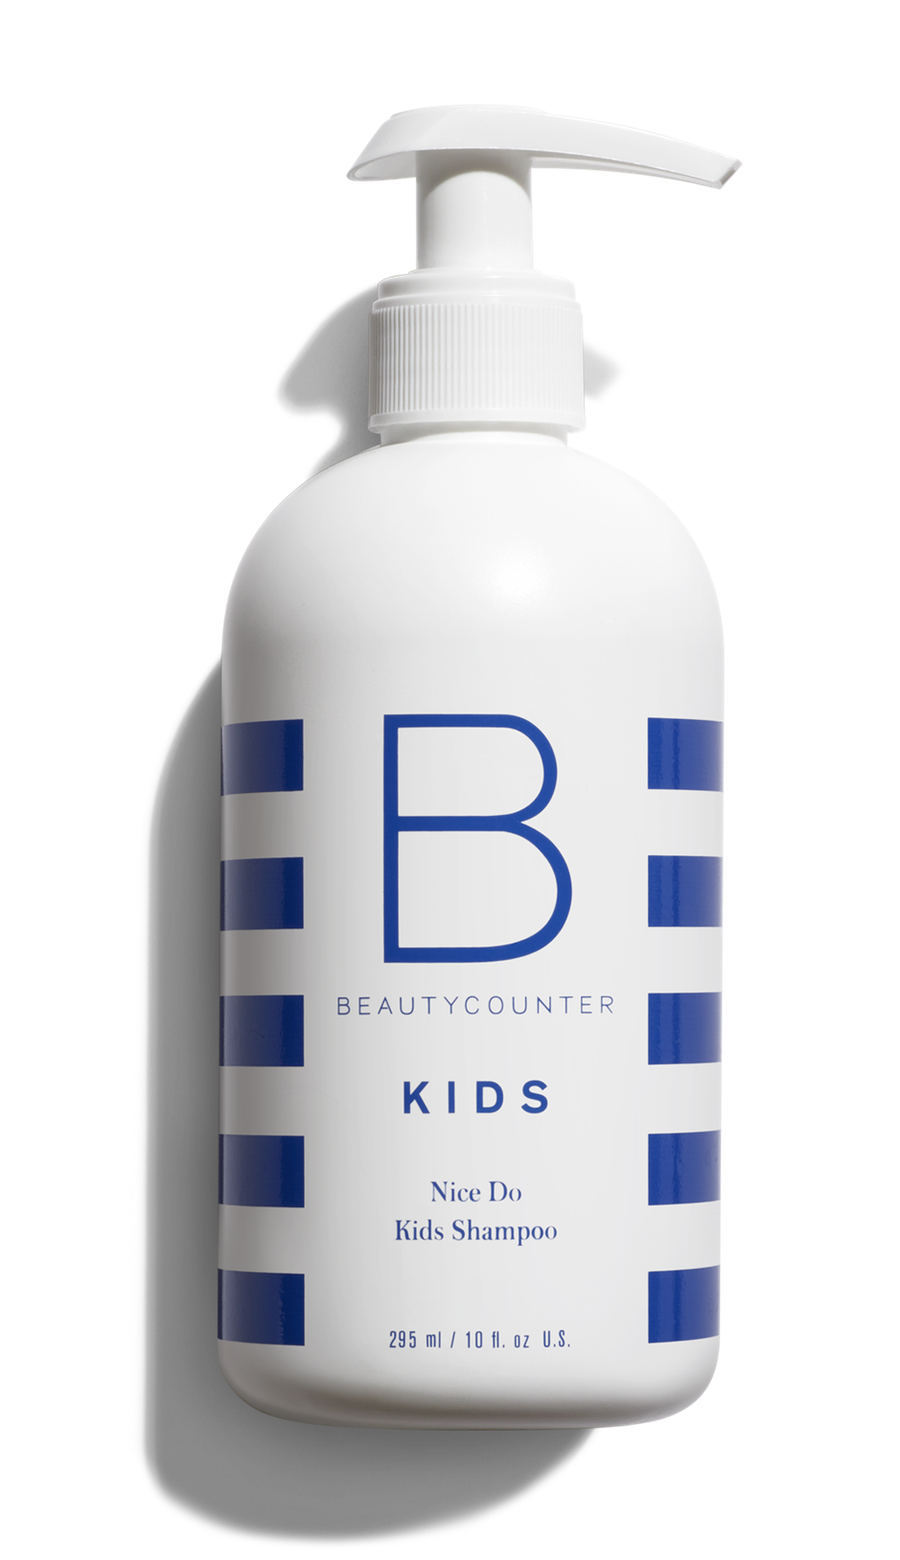 product-images-4011-imgs-pdp-new-nice-do-kids-shampoo.png